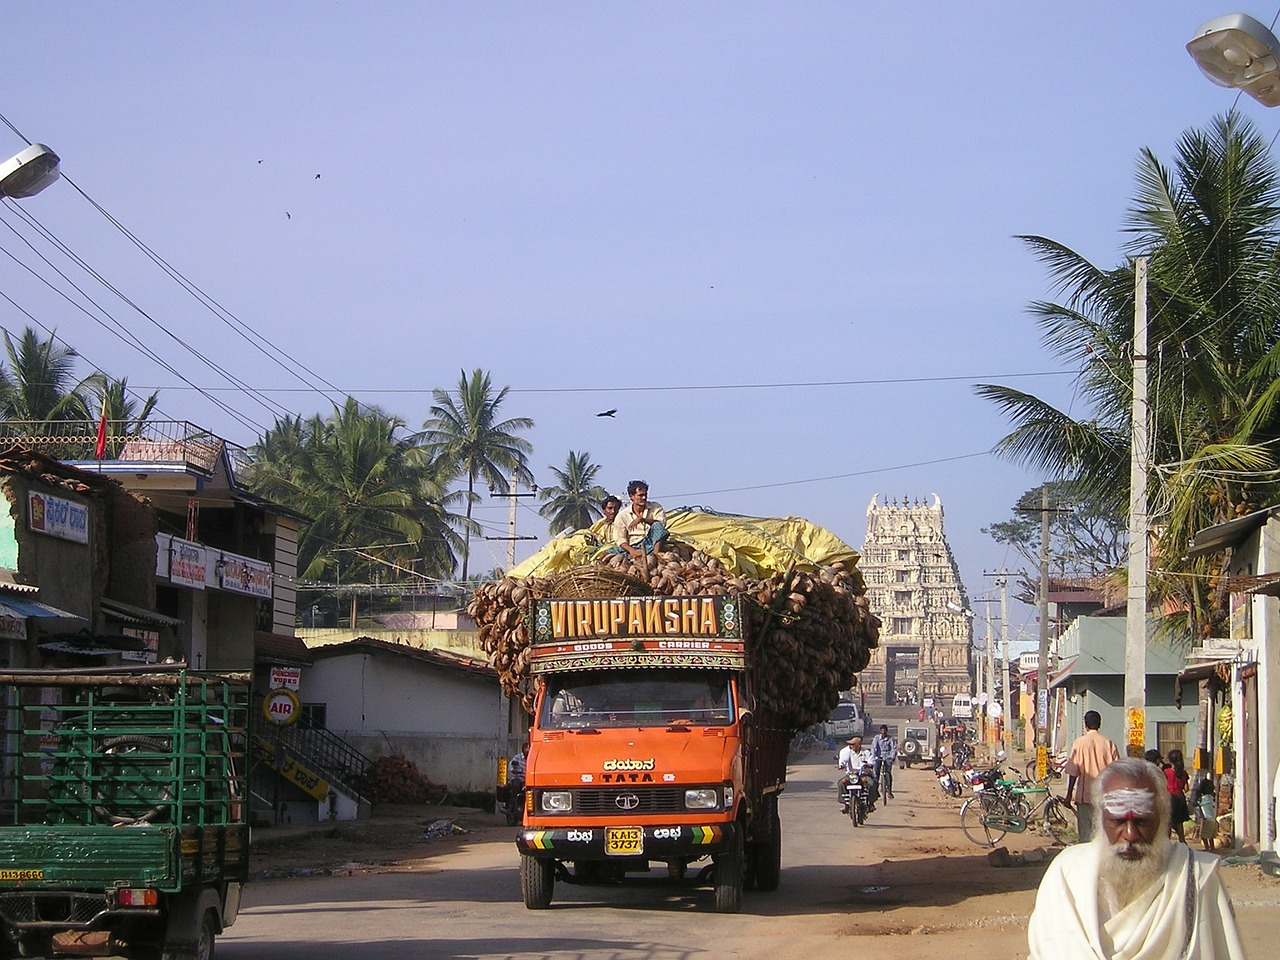 india overloaded truck free photo